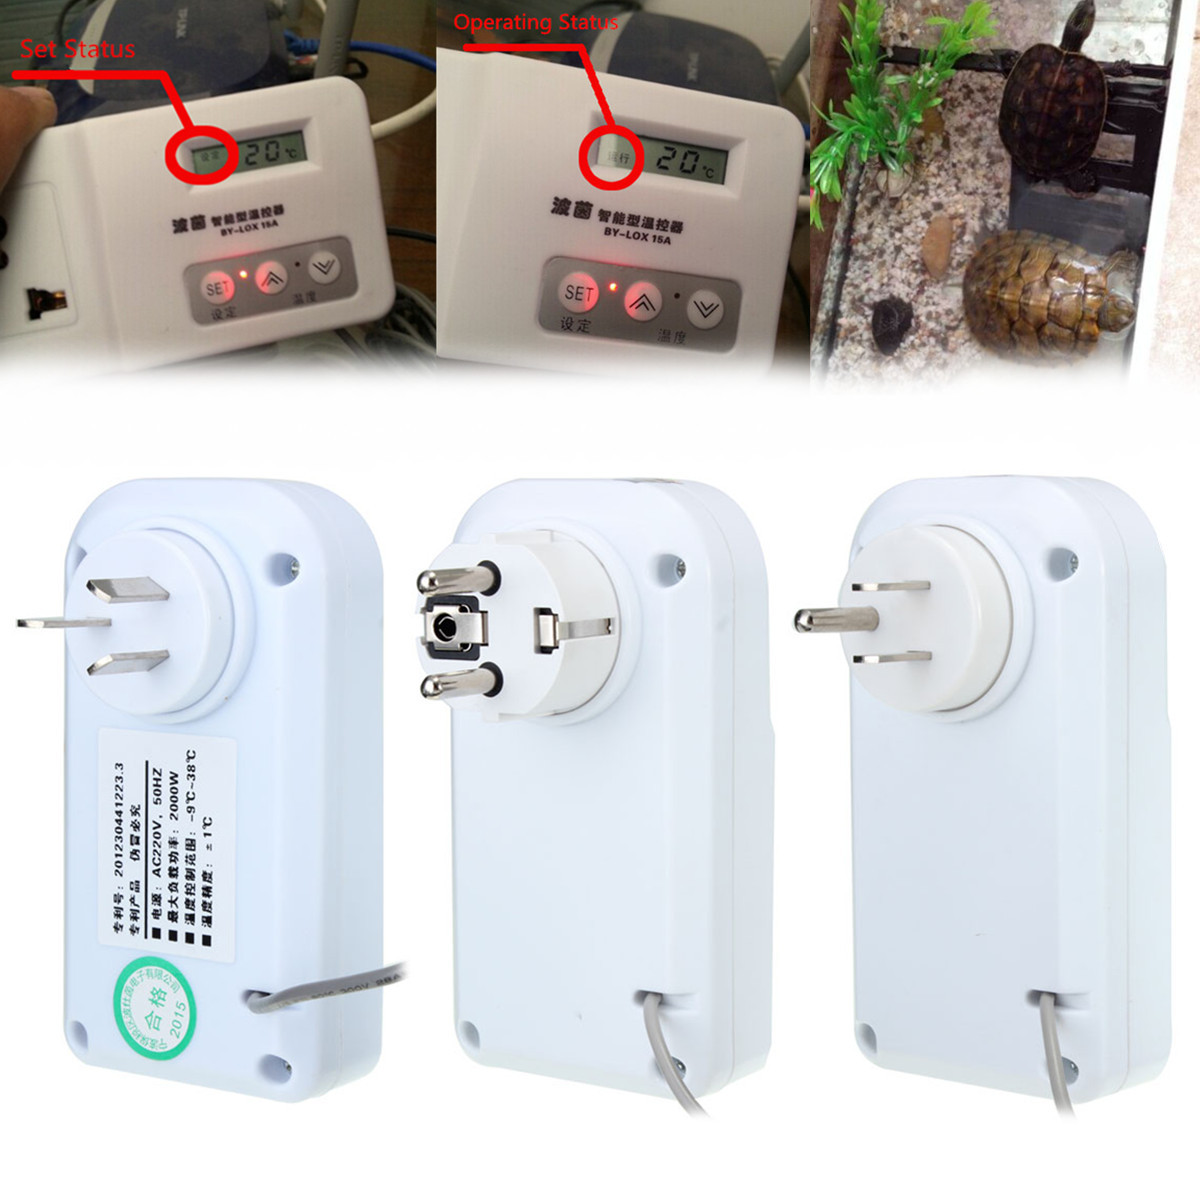 Refrigerator Thermostat Temperature Controller For Aquarium Greenhouse #BF0D0C